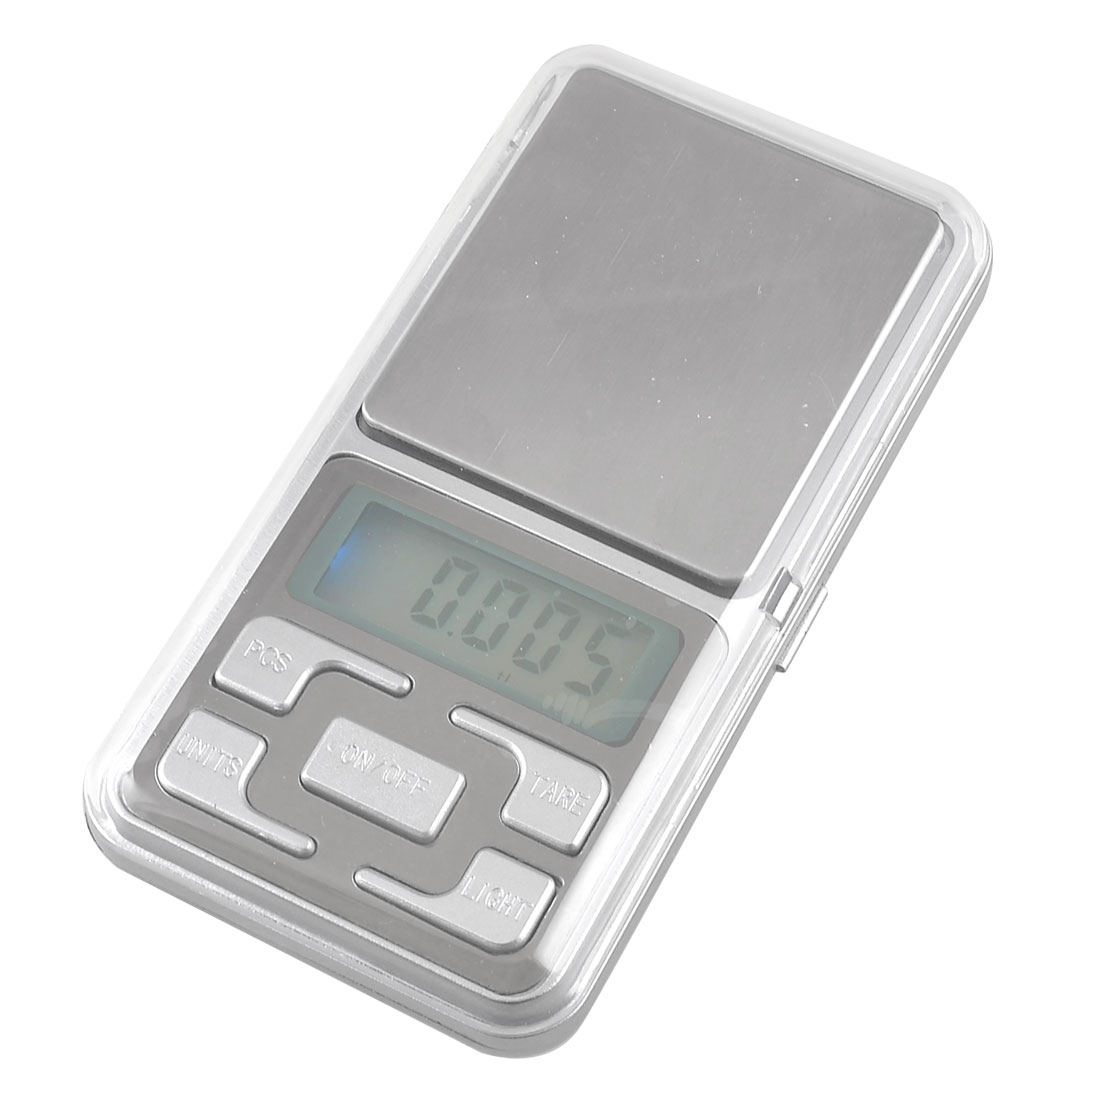 LED Back Light Max 500g LCD Digital Display Electronic Pocket Scale Silver Tone